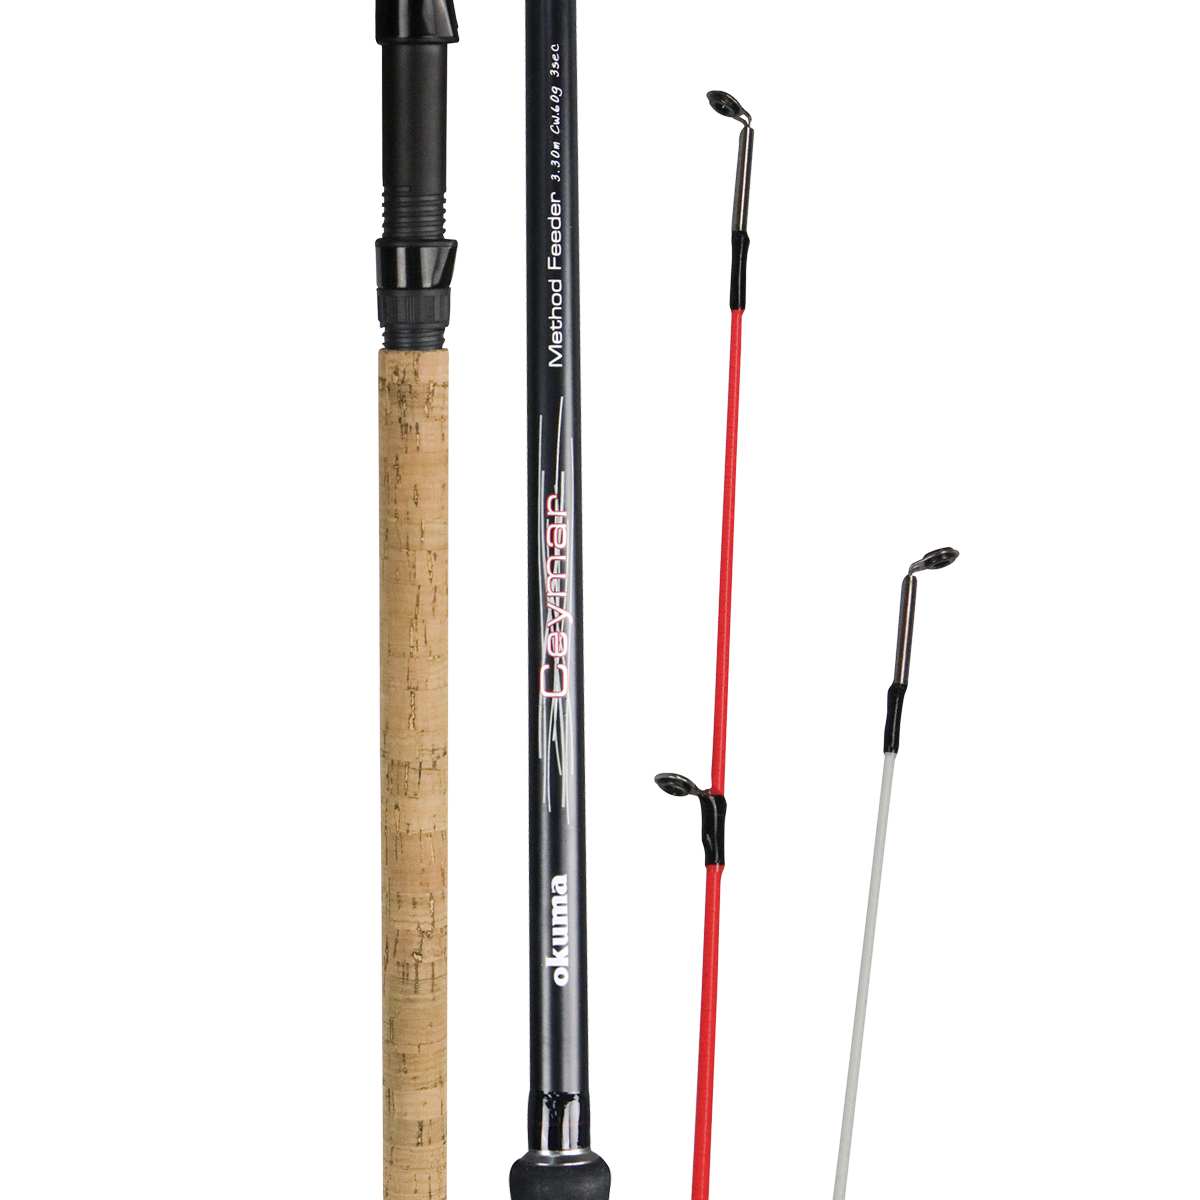 Ceymar Match/Feeder Rod - Ceymar Match/Feeder Rod